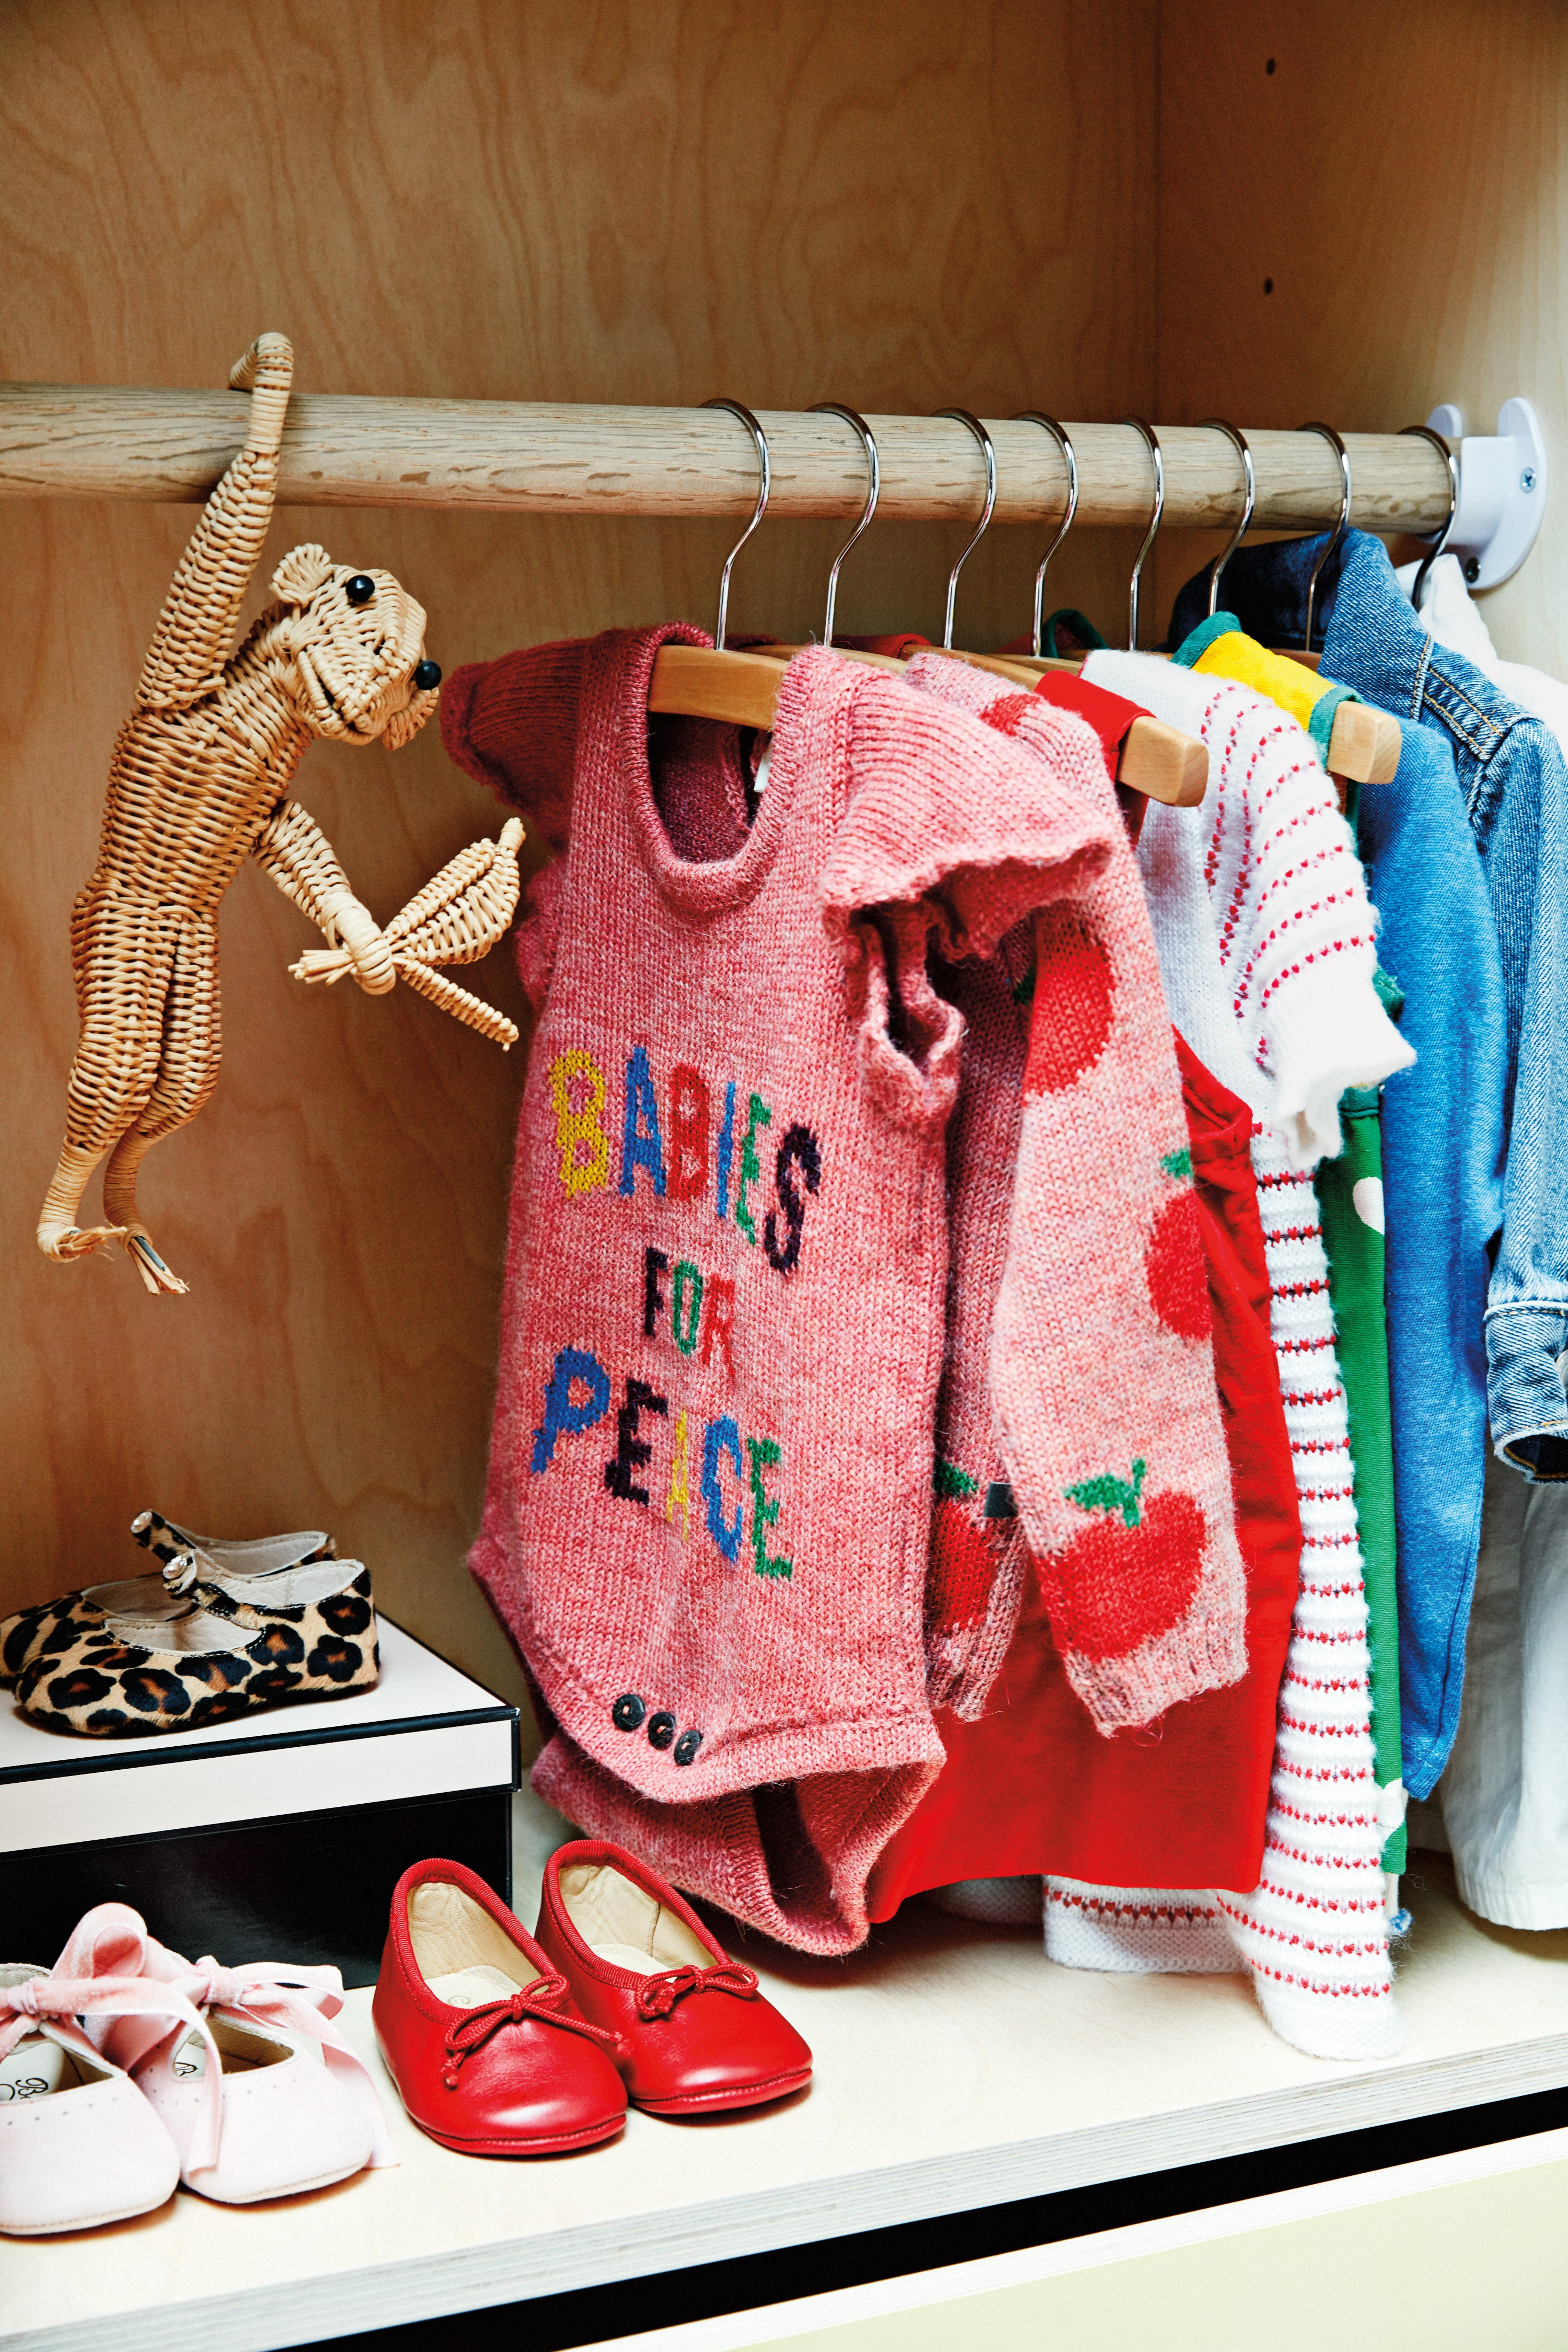 christene-barberich-kids-clothes-hanging